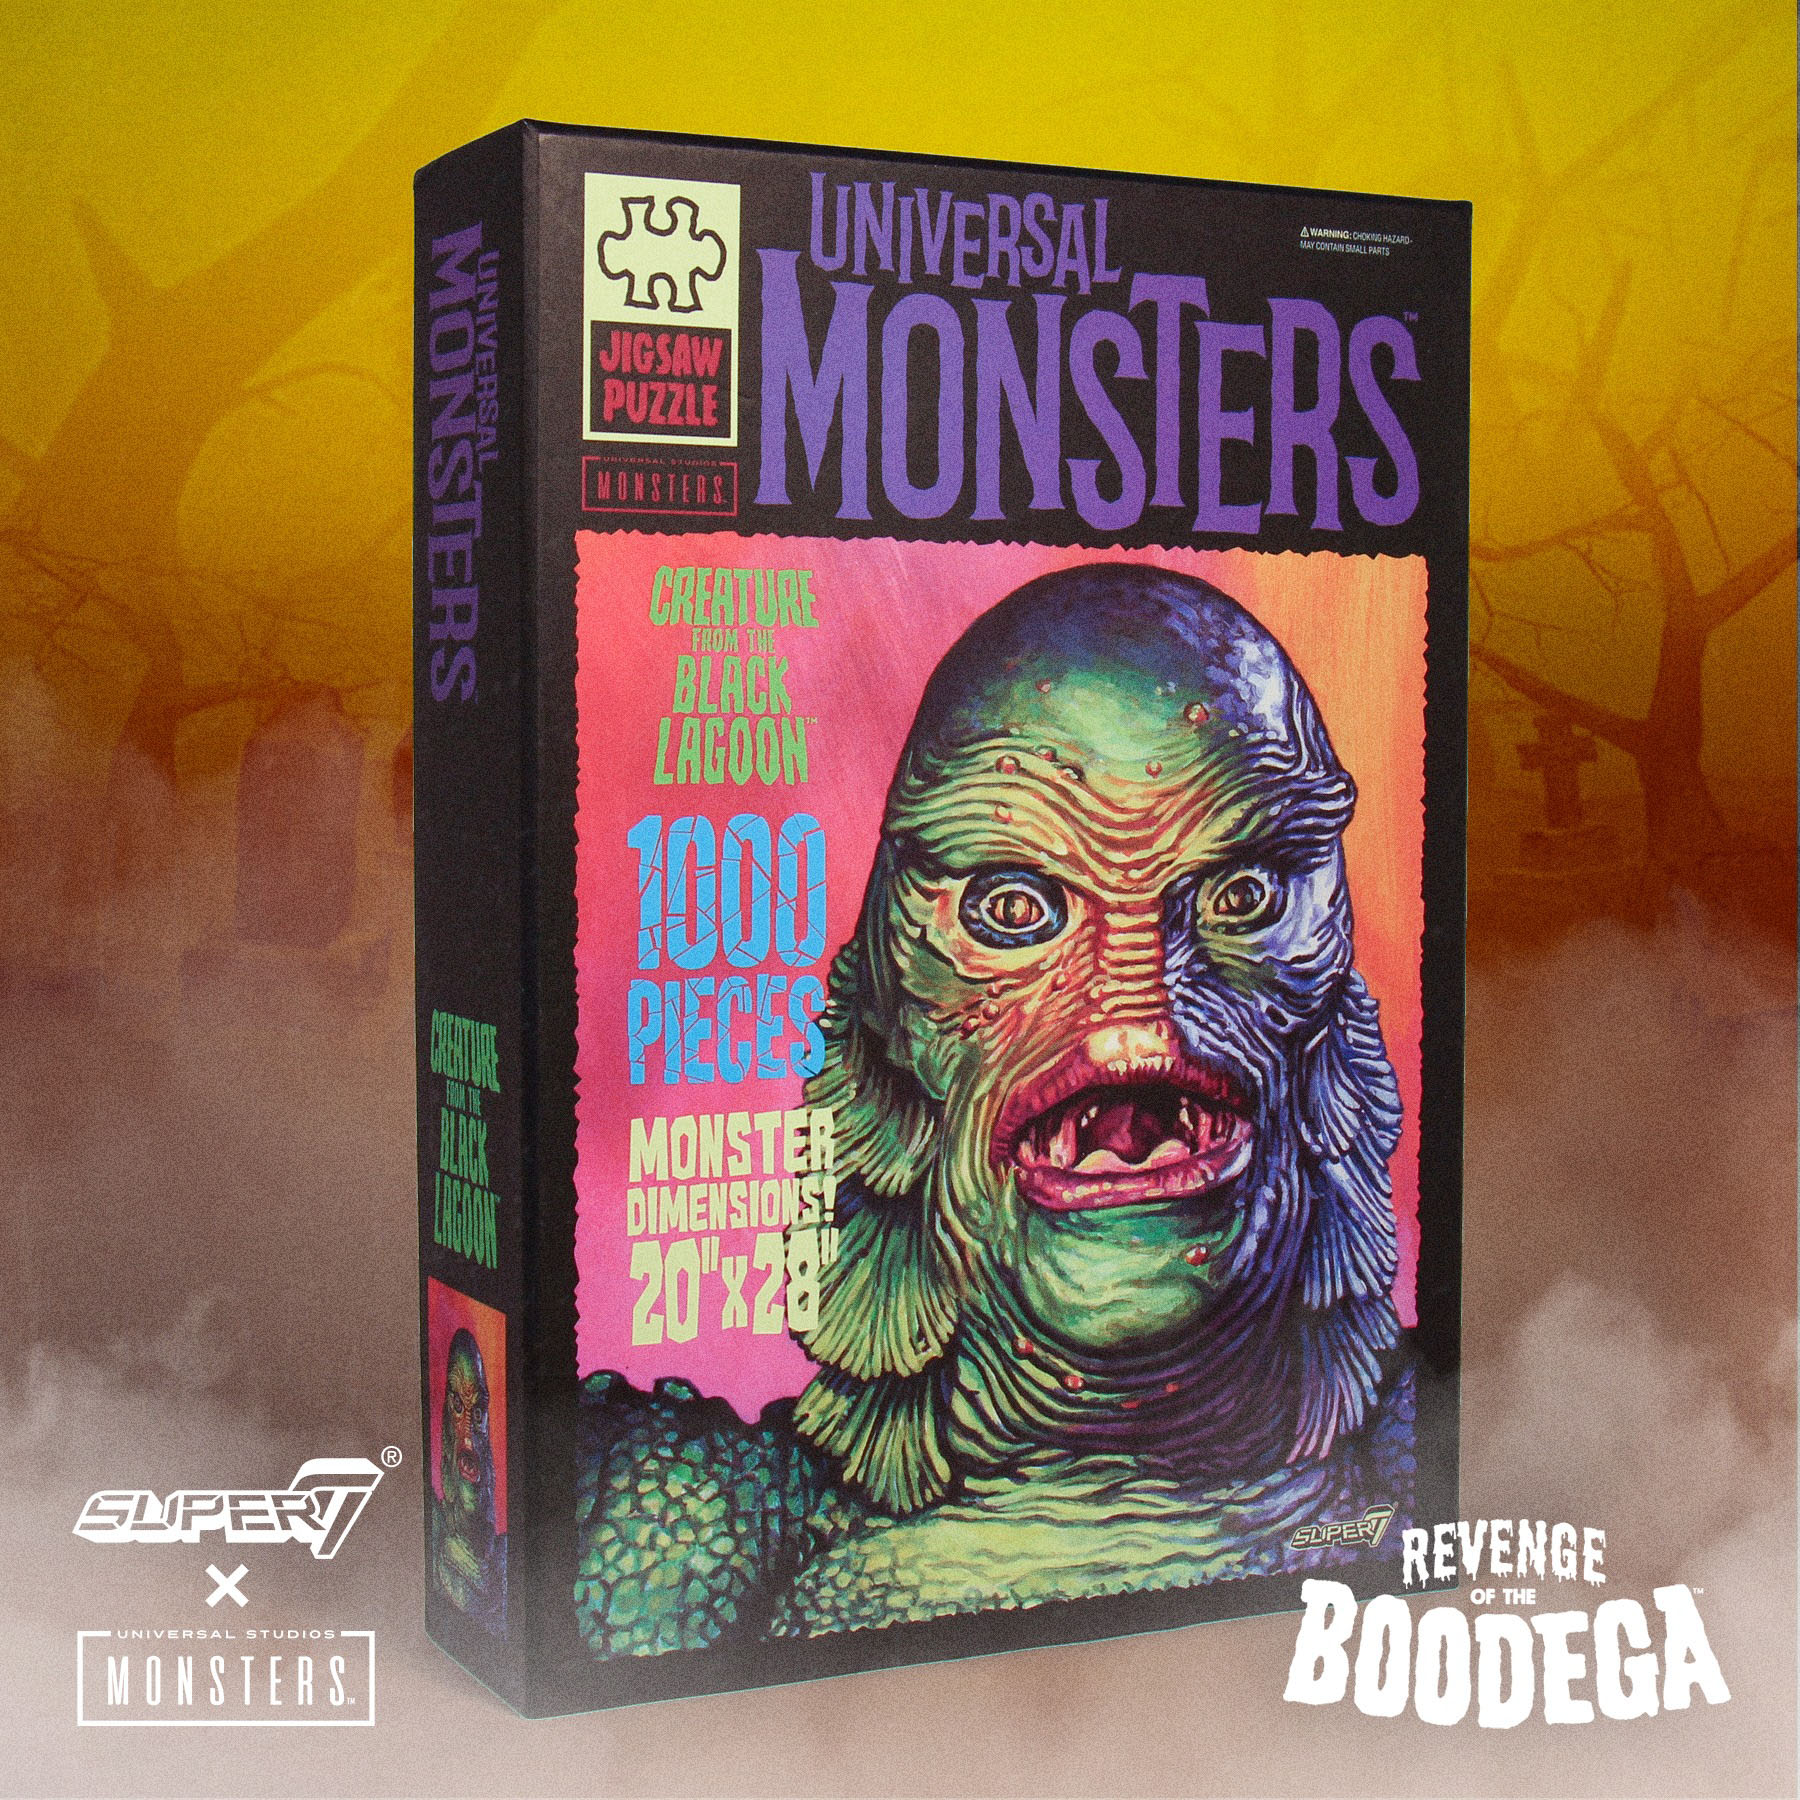 SDCC 2019 Super 7 Horror Exclusives 001